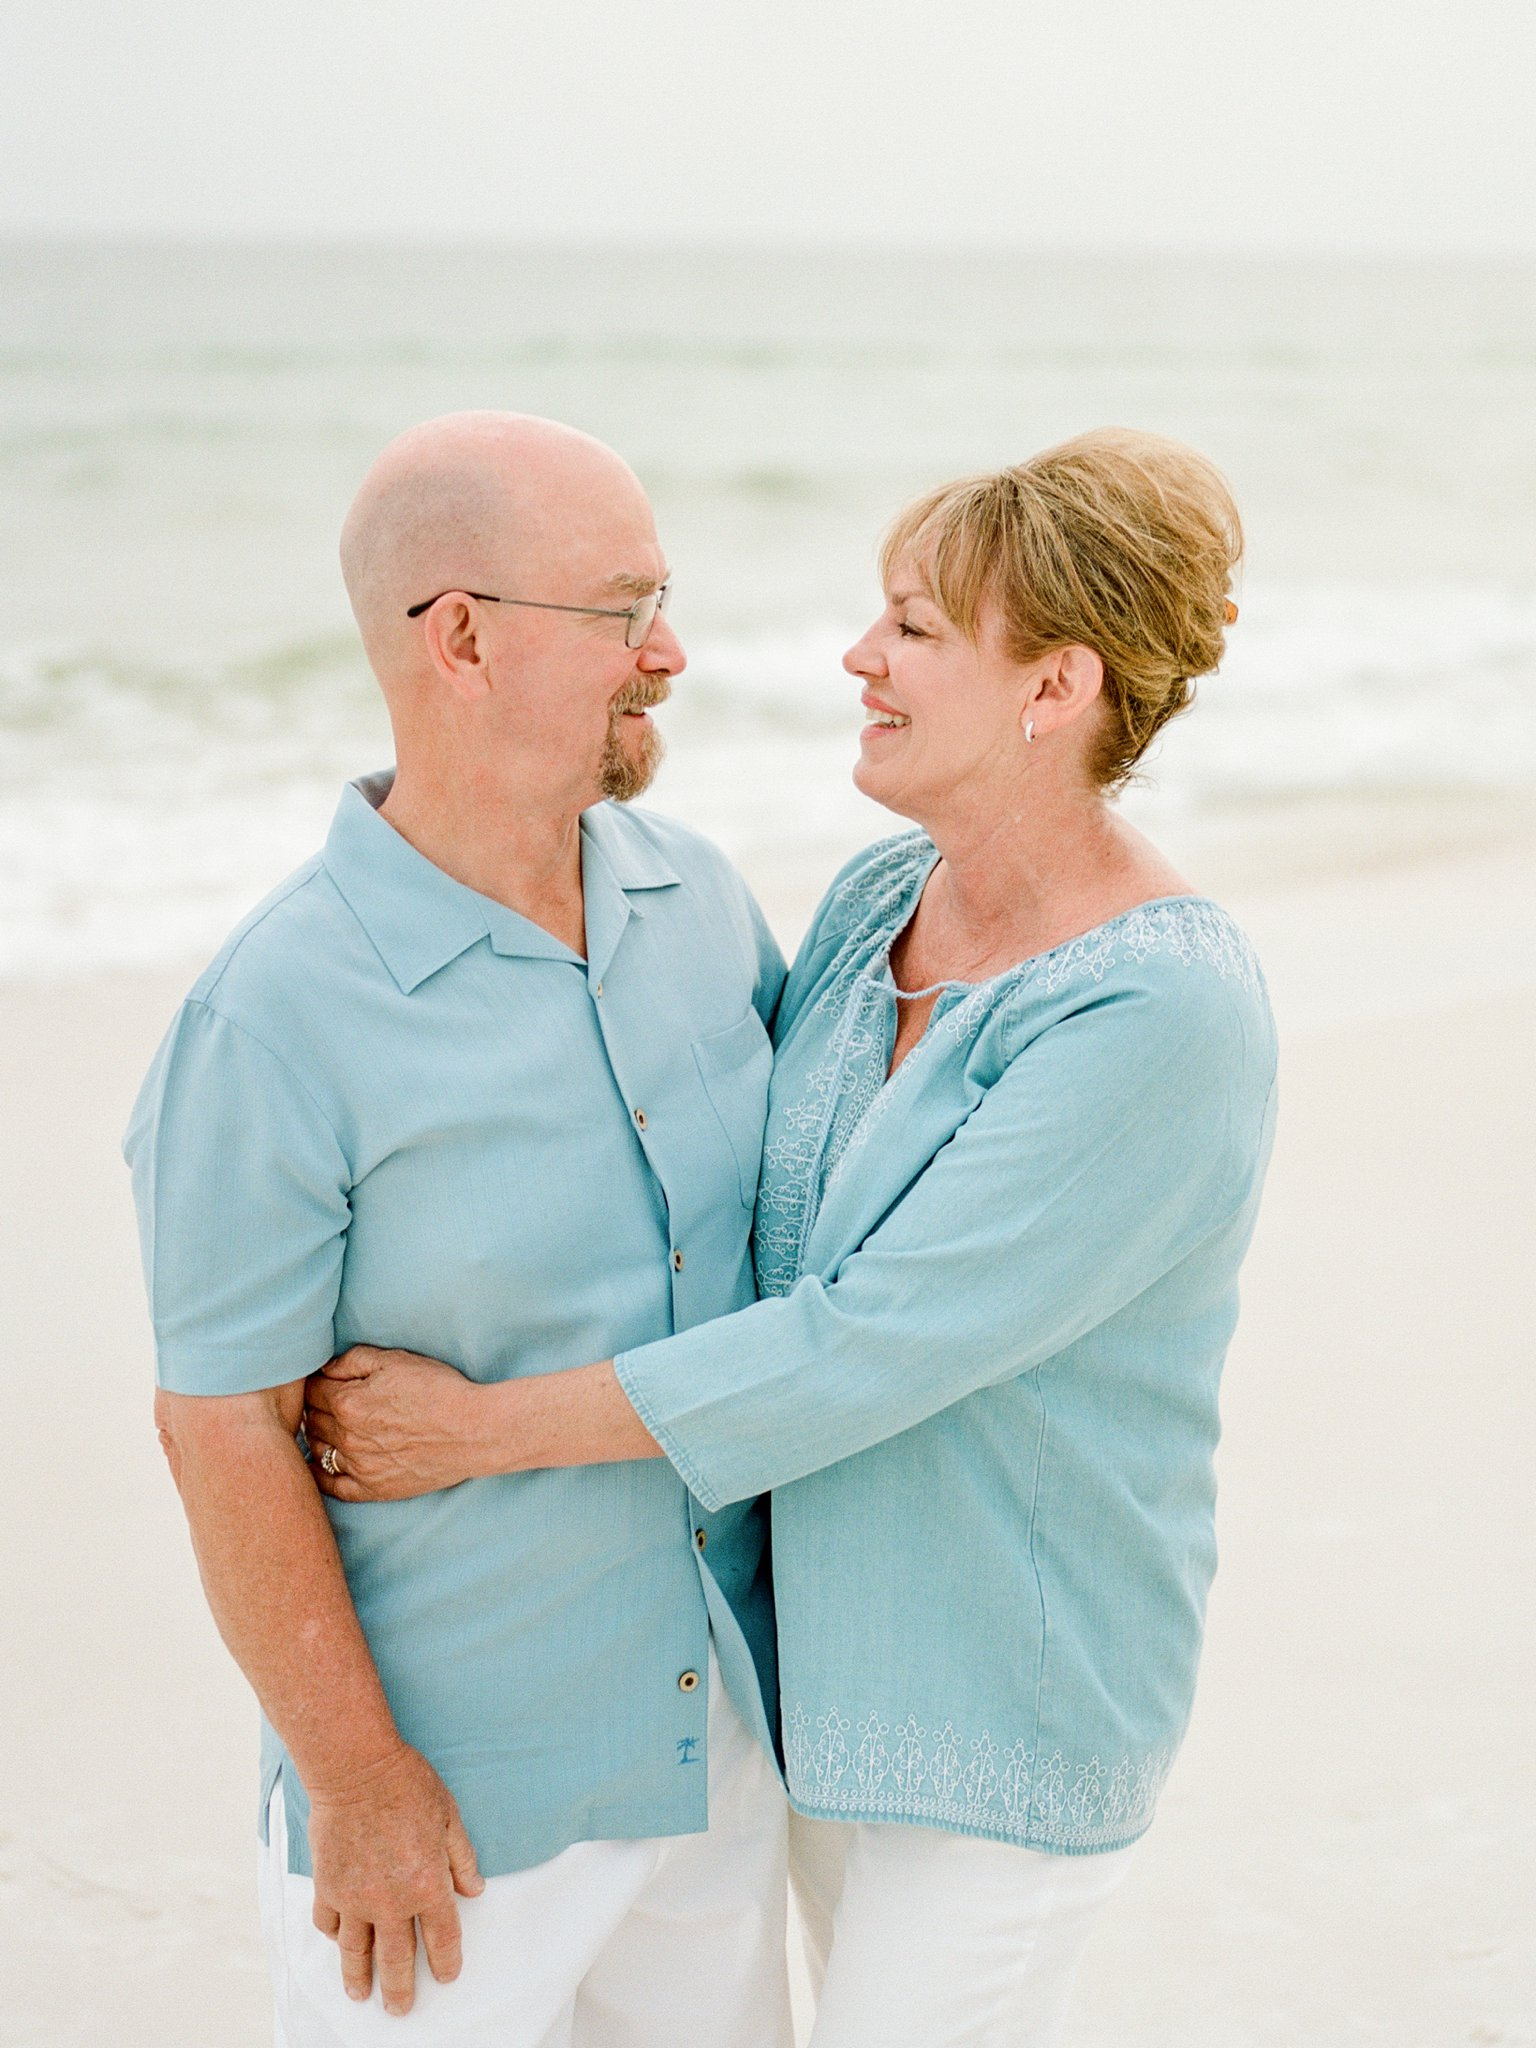 alys beach family photographer destin florida beach photographer shannon griffin photography_0012.jpg